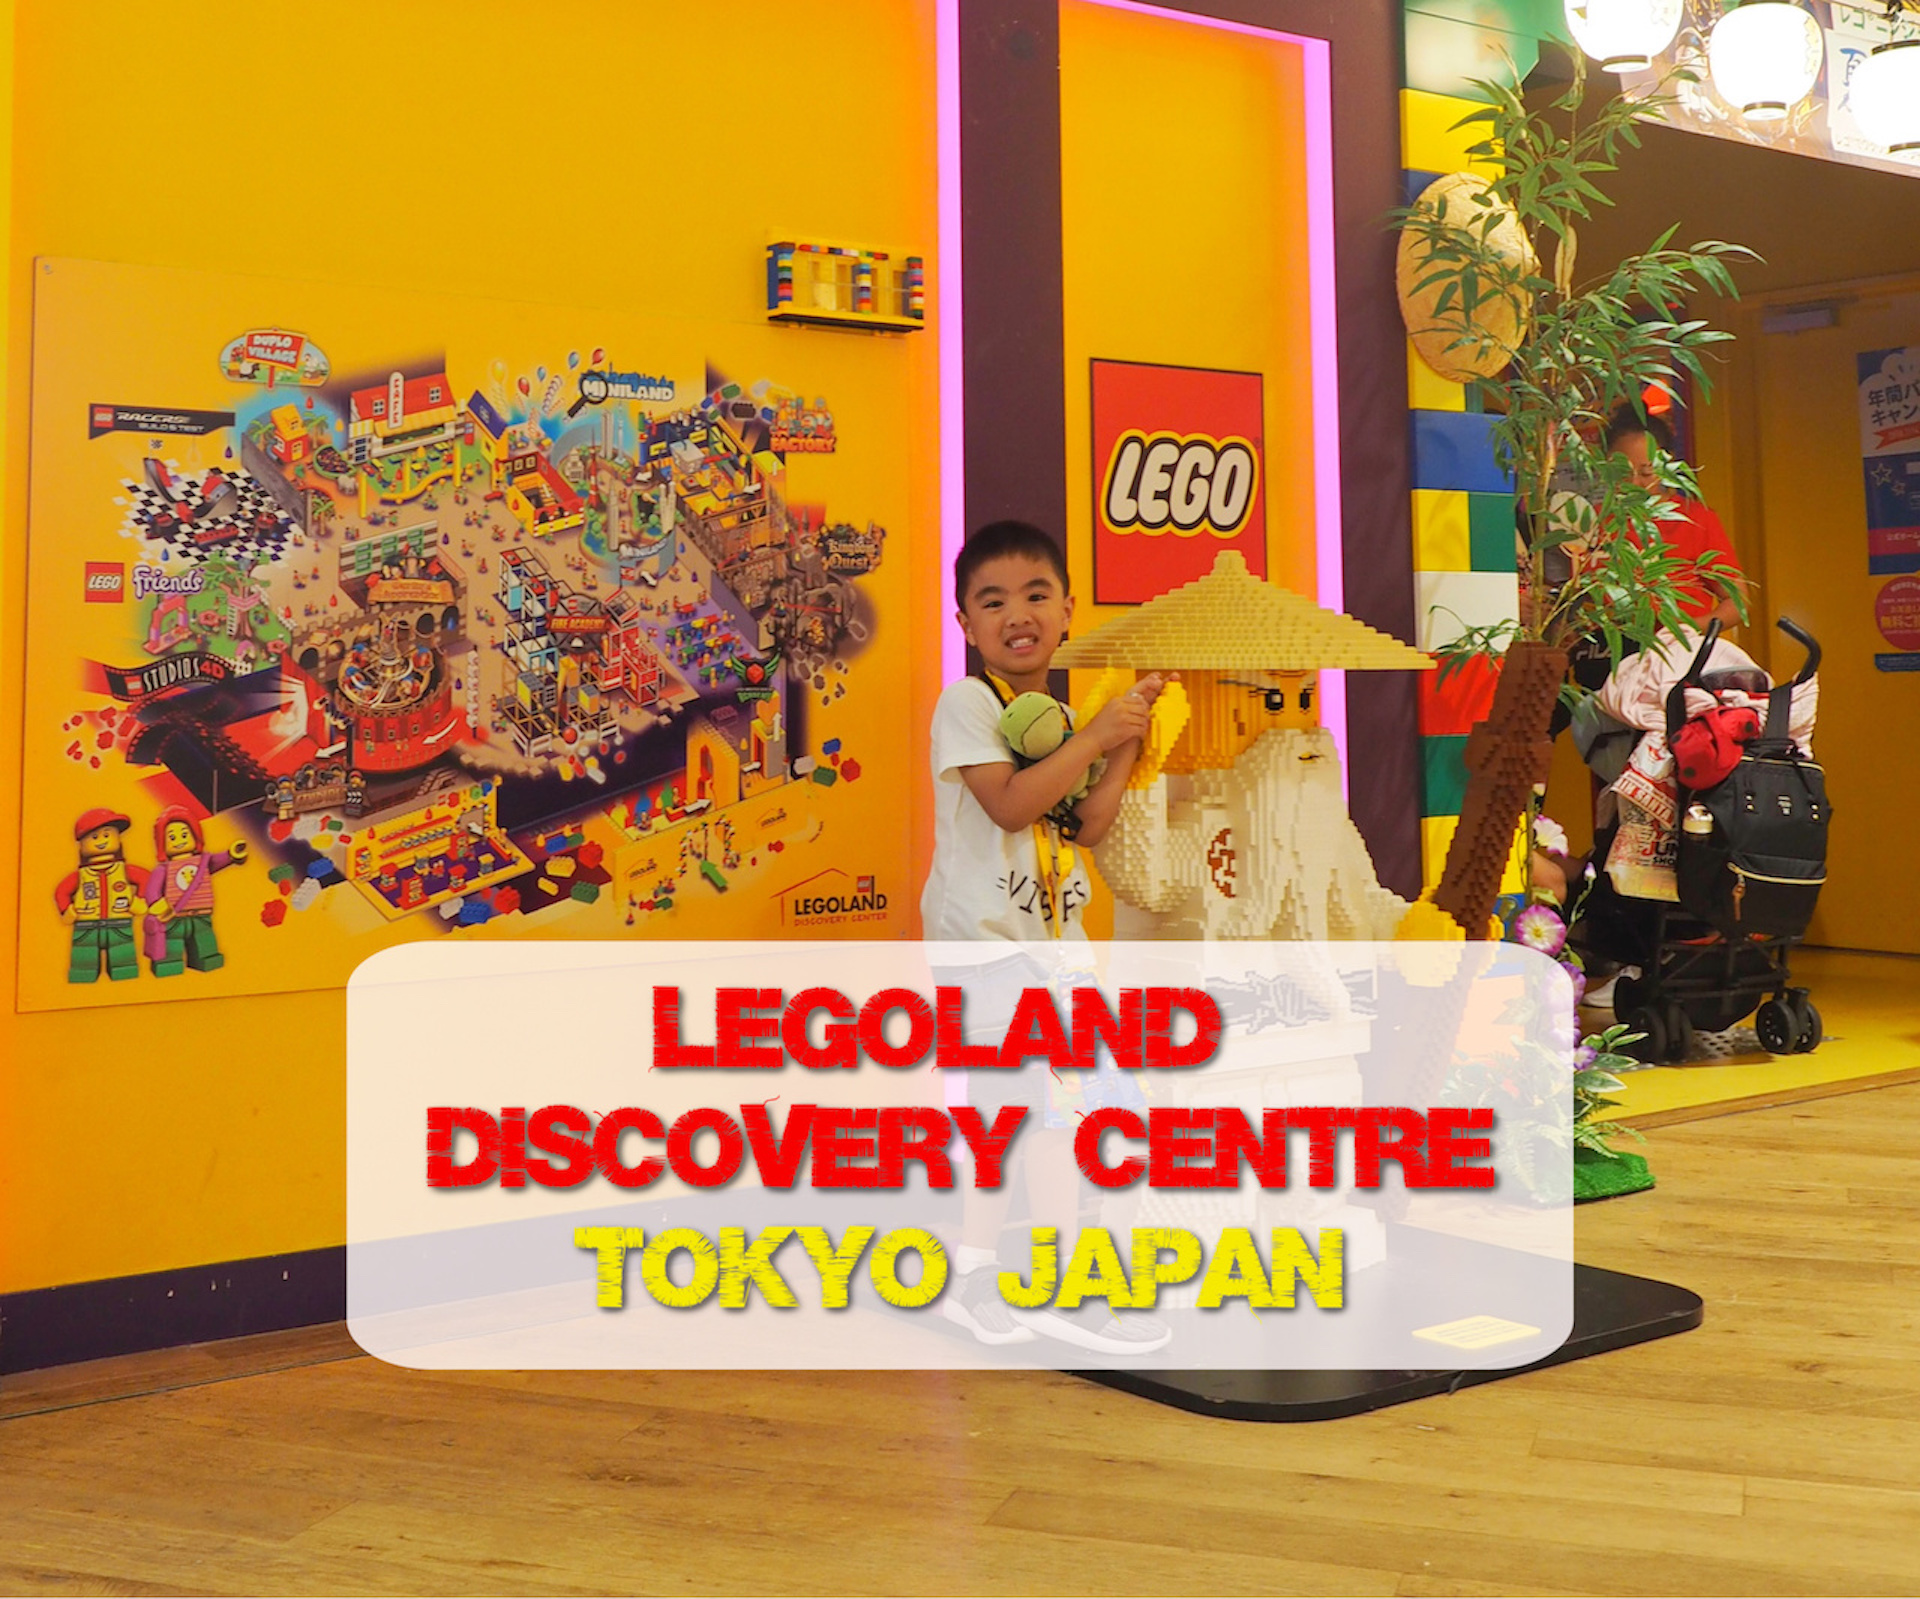 Legoland Discovery Centre at Tokyo, Japan 2018